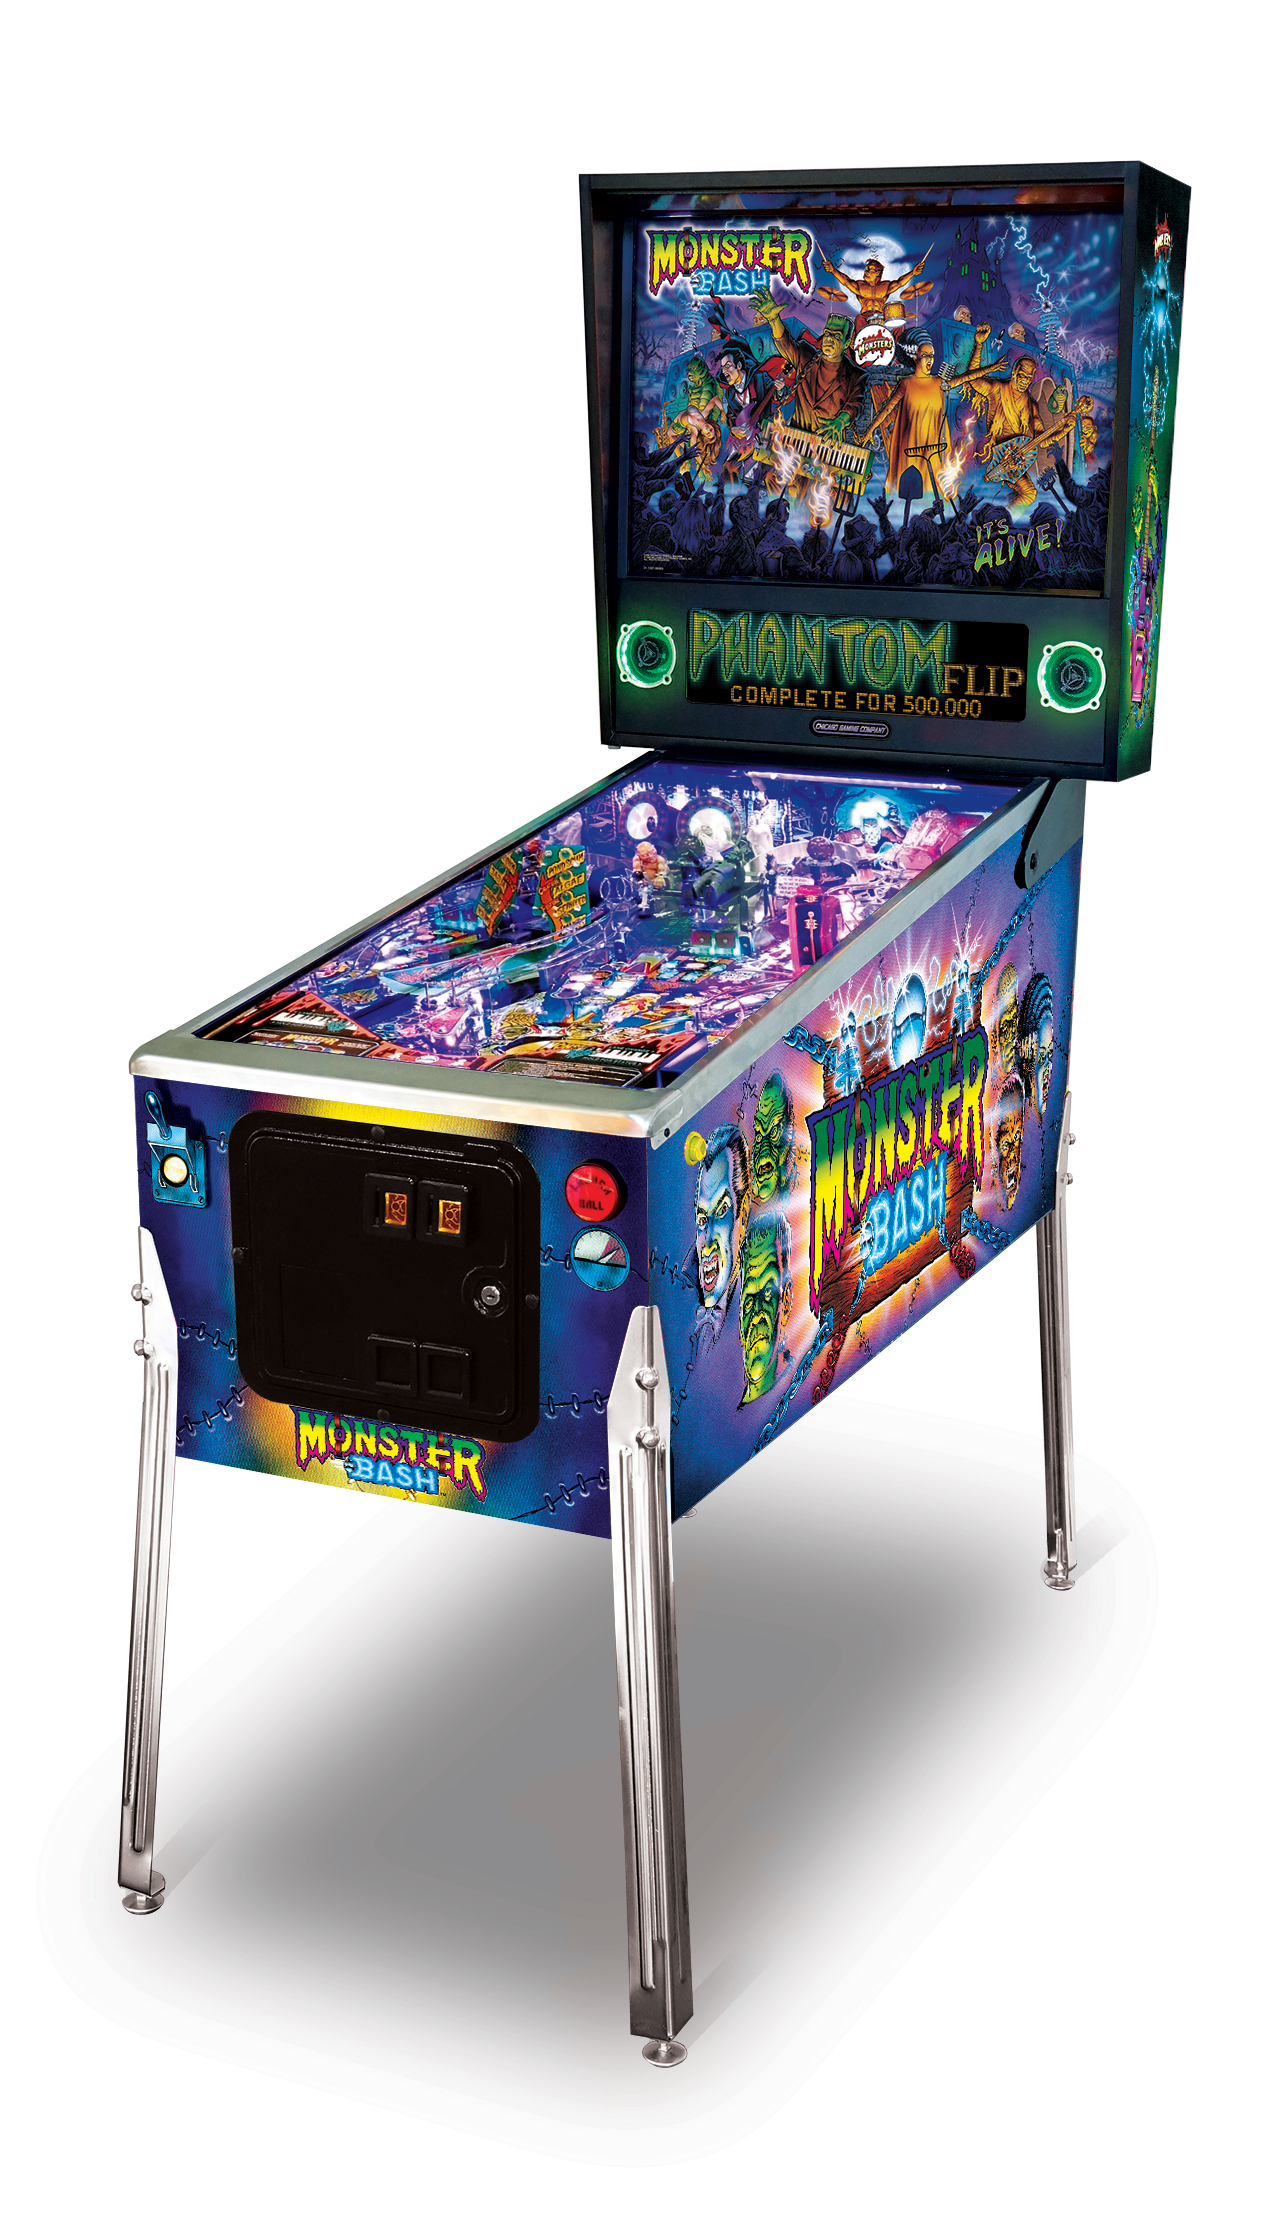 Chicago Gaming Monster Bash Special Pinball Machine